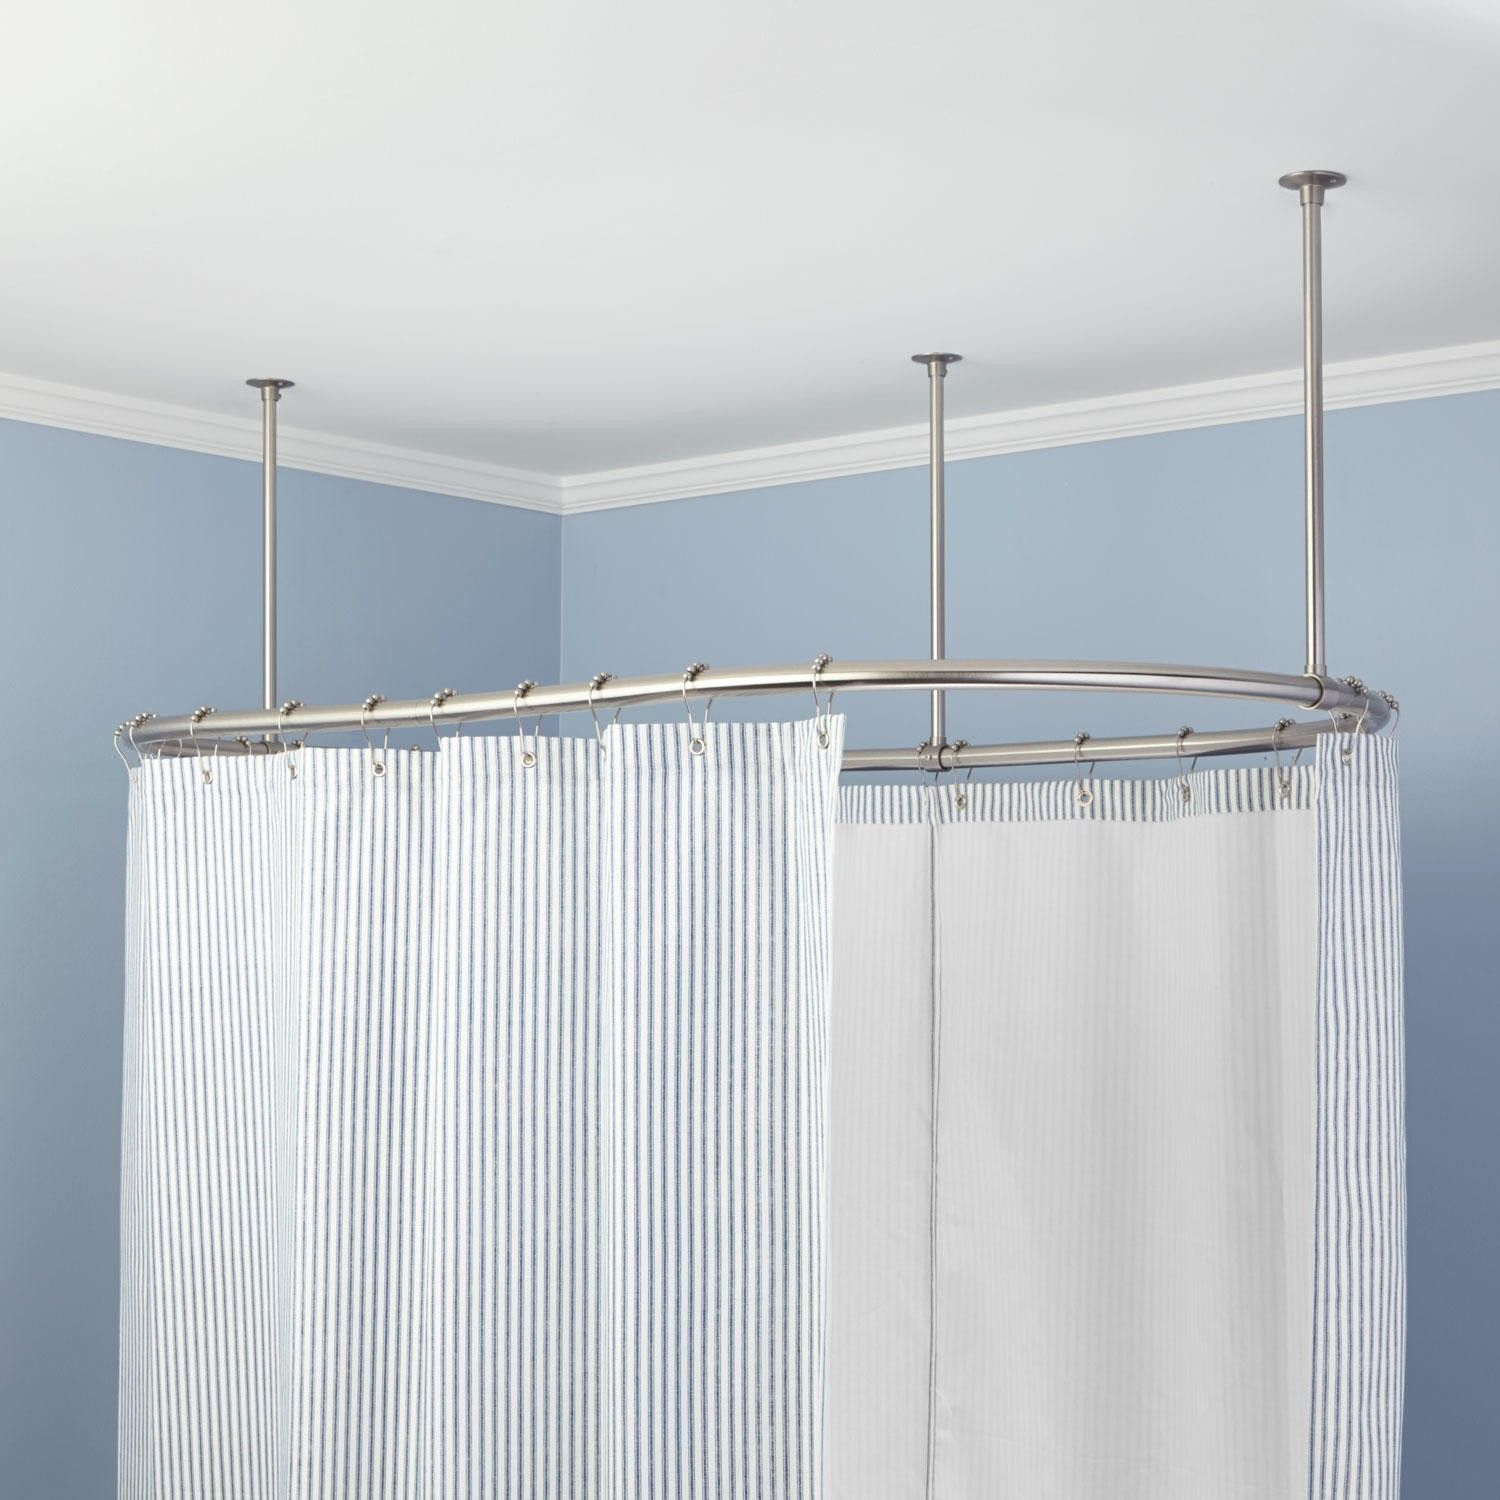 Oval Curtain Rod System 4 Multiple Backdrops Clawfoot Tub Shower